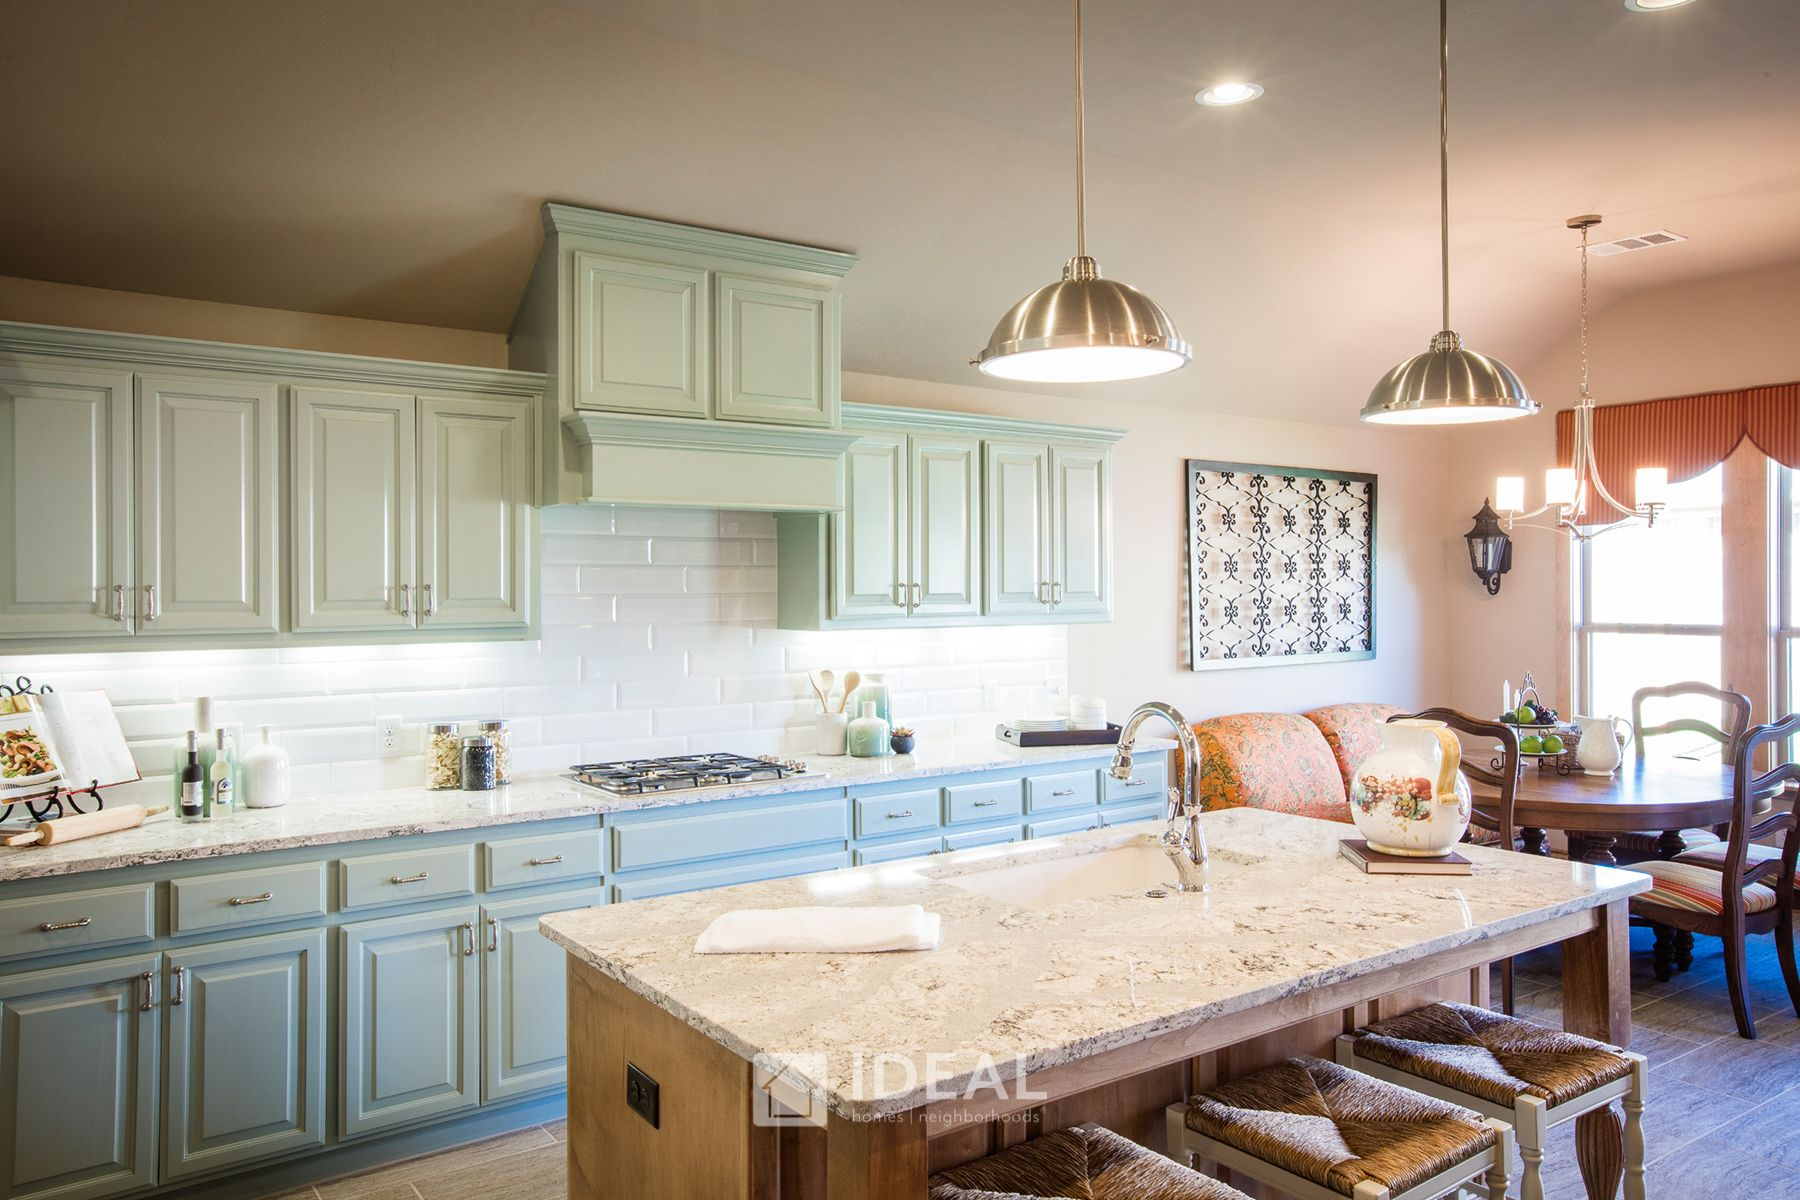 Kitchen featured in the Kendall By Ideal Homes in Oklahoma City, OK